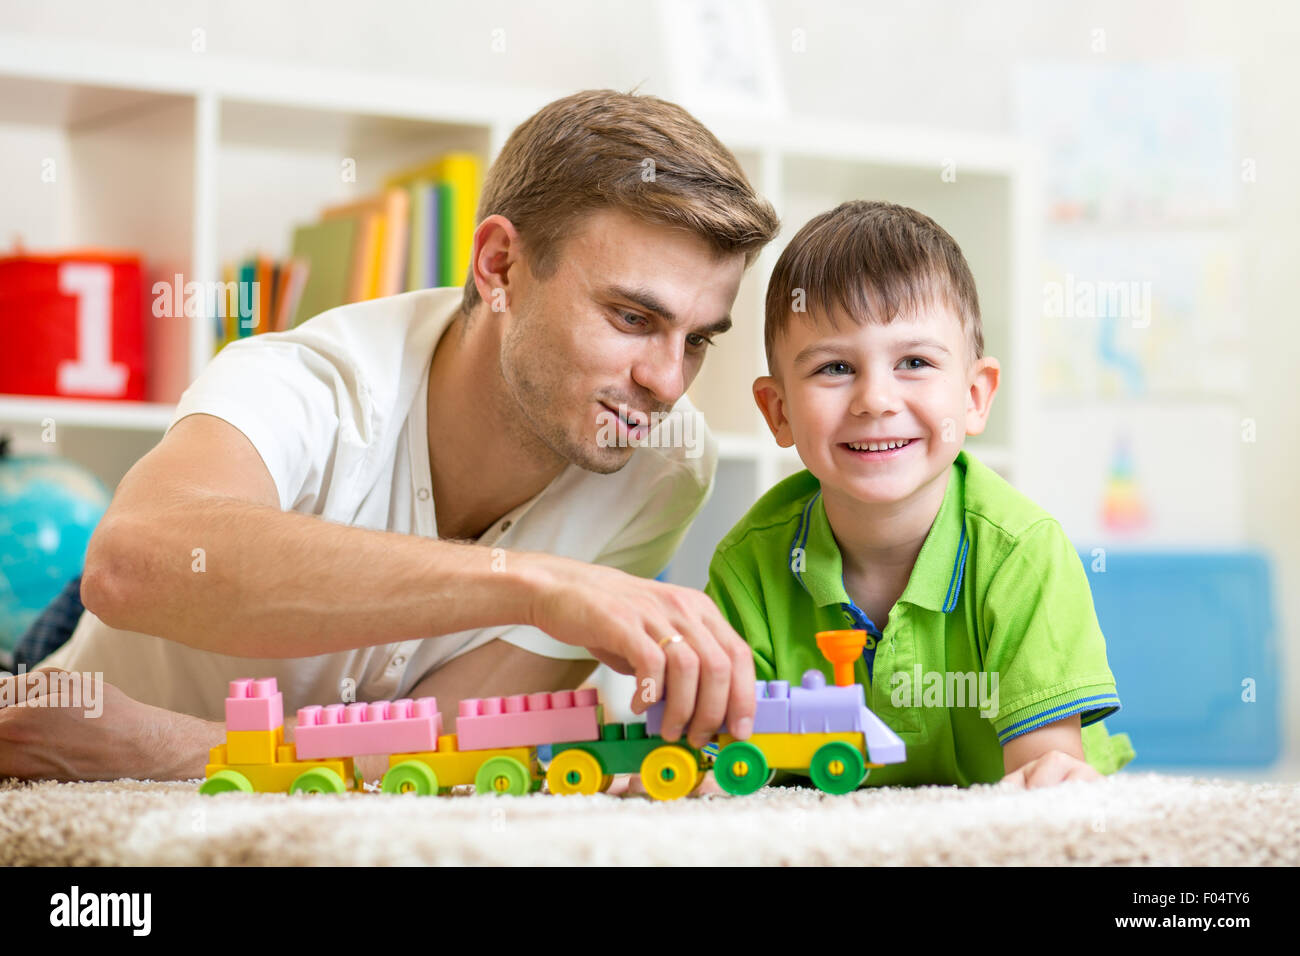 Family time. Kid boy joyfully playing building blocks with his father - Stock Image